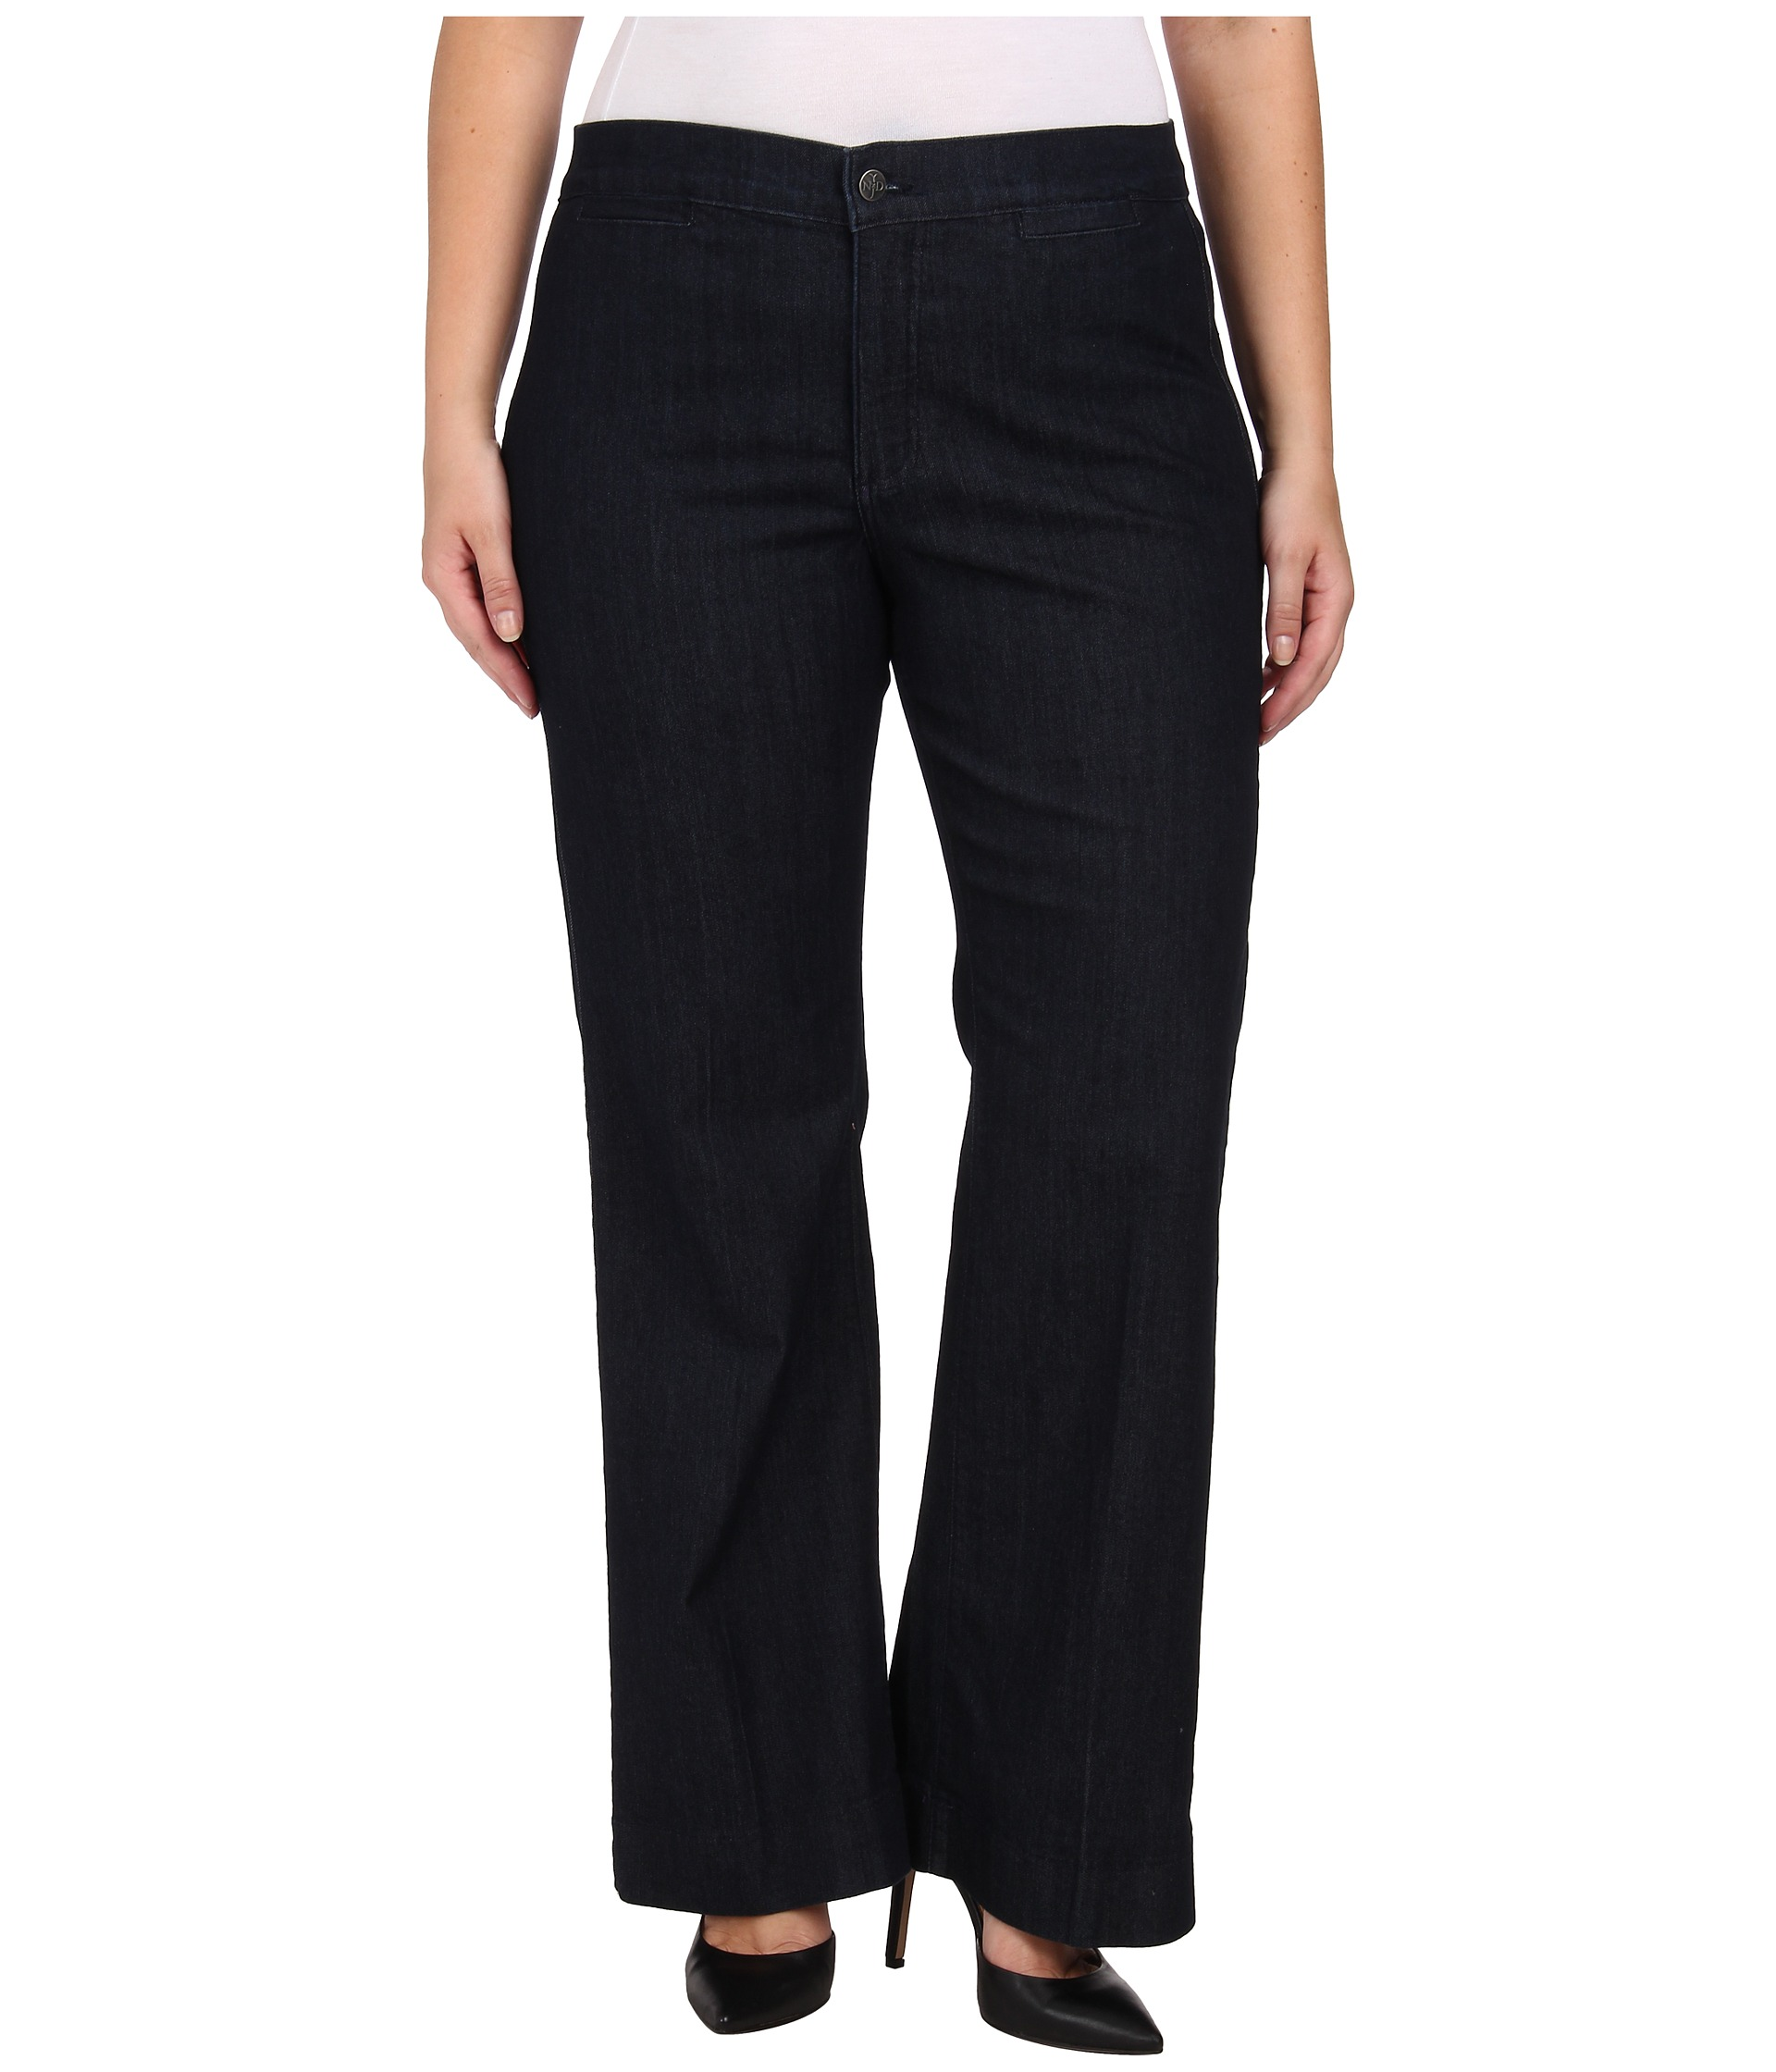 Find great deals on eBay for plus size trouser jean. Shop with confidence.